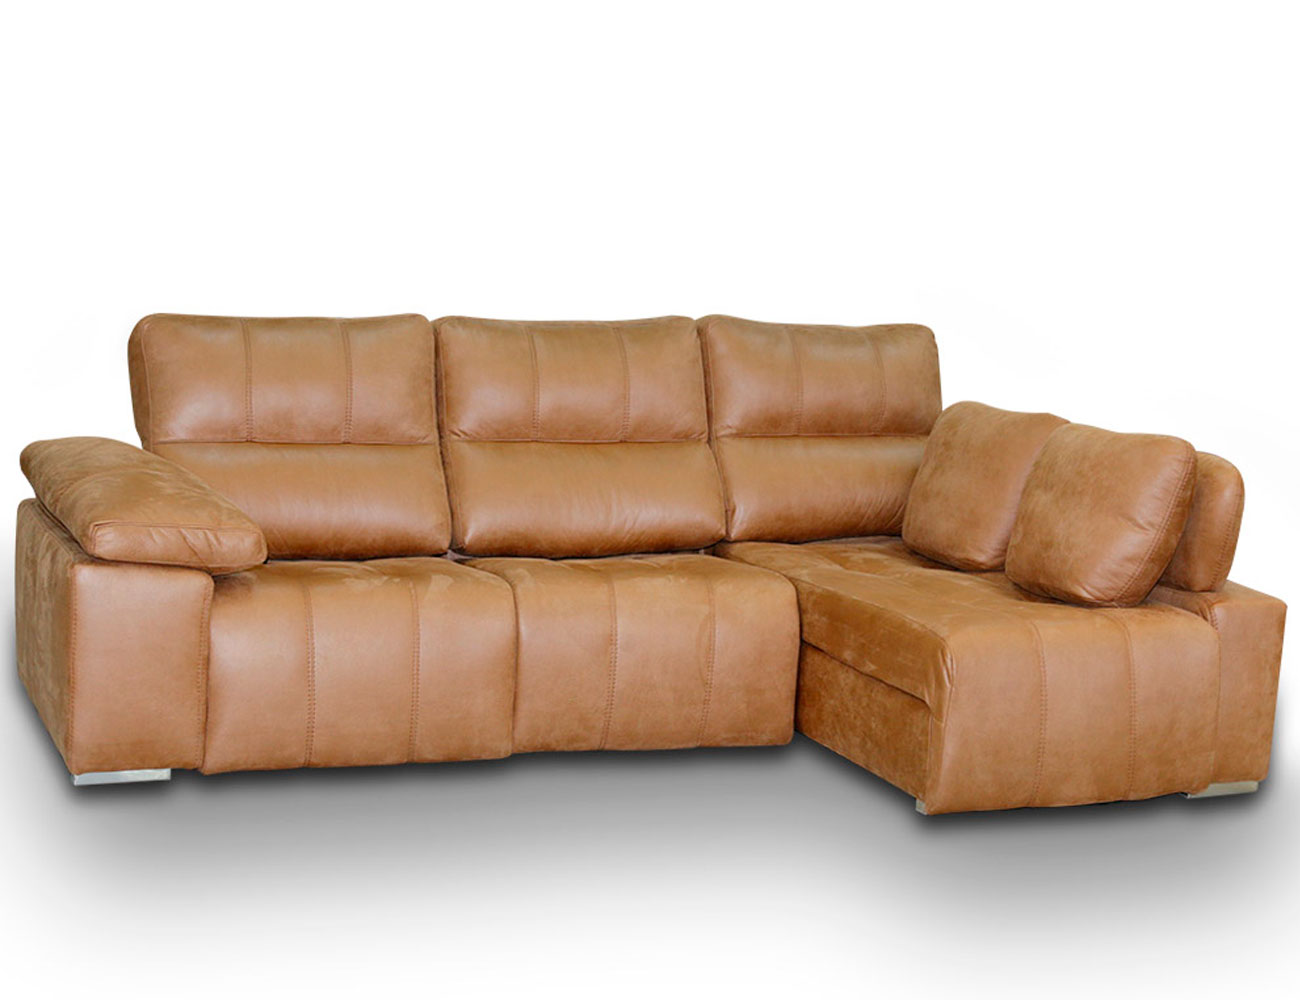 Sofa chaiselongue relax 2 motores anti manchas21